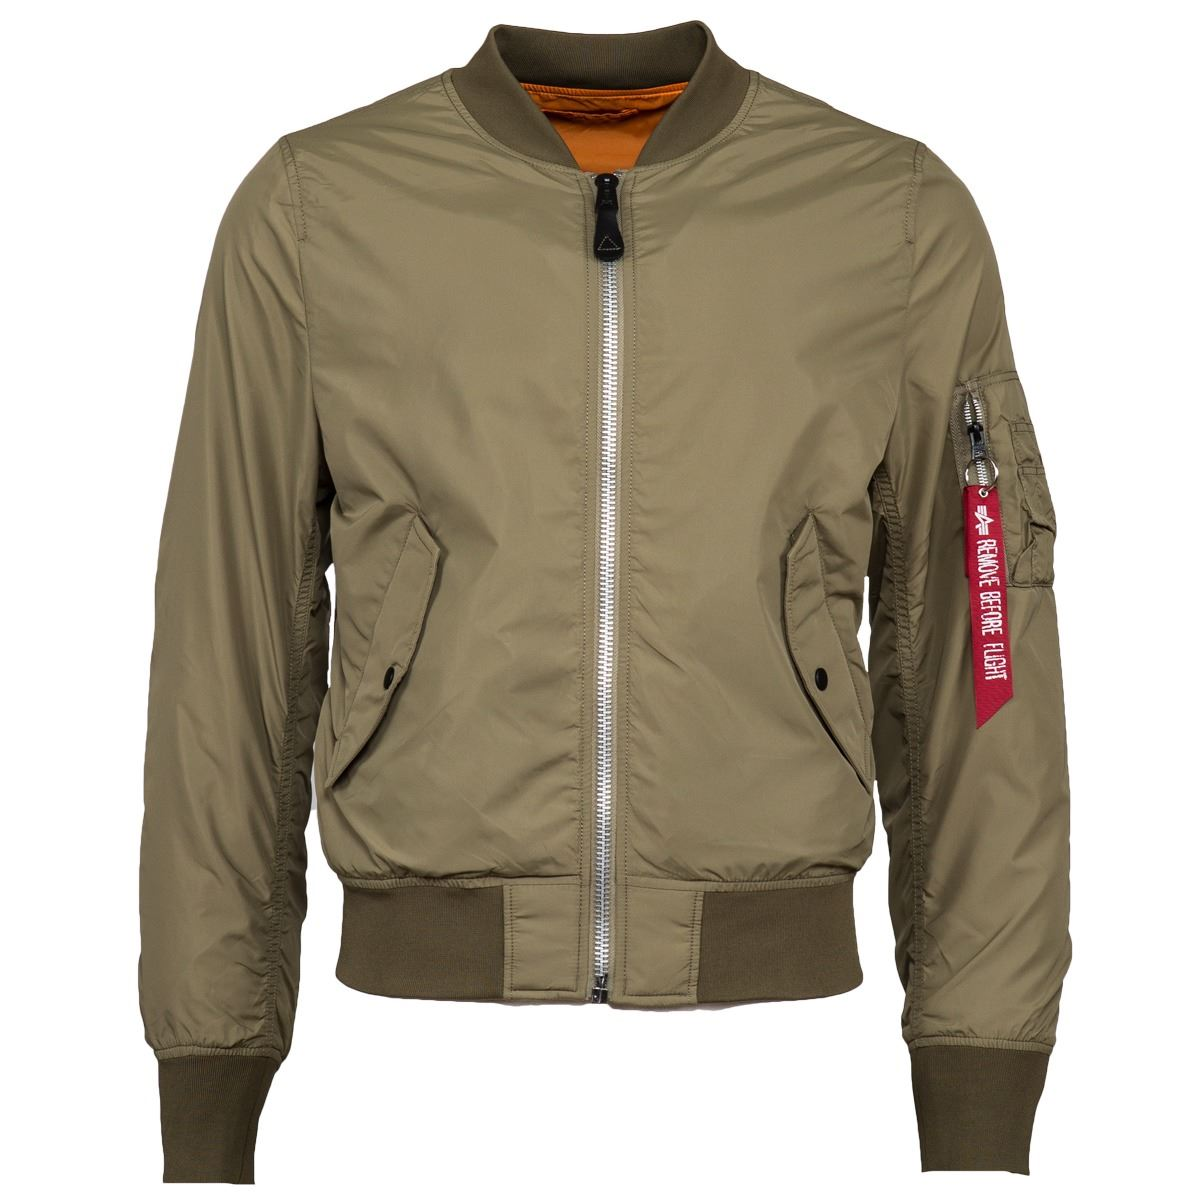 Fine Jacket Inc. L-2B CTN Flight Jacket | Alpha Industries